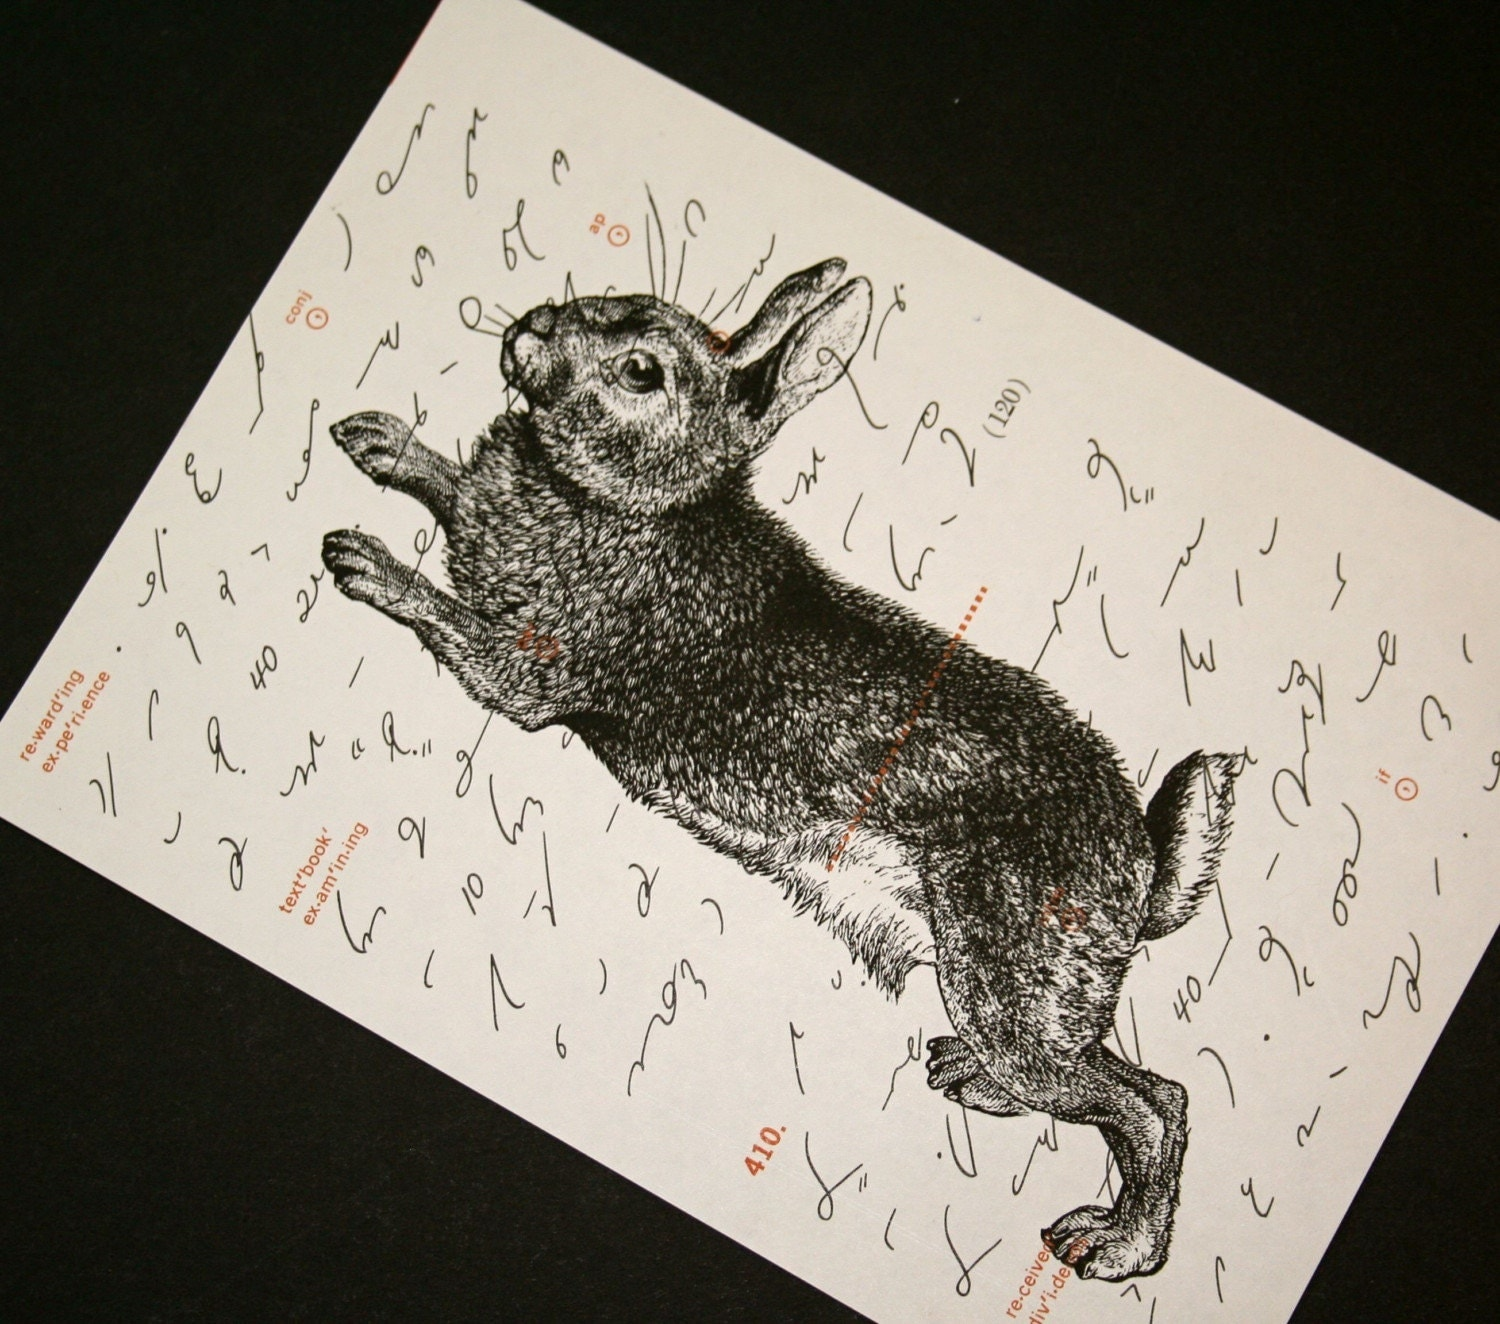 Leaping Rabbit on Shorthand Text - 5 x 7